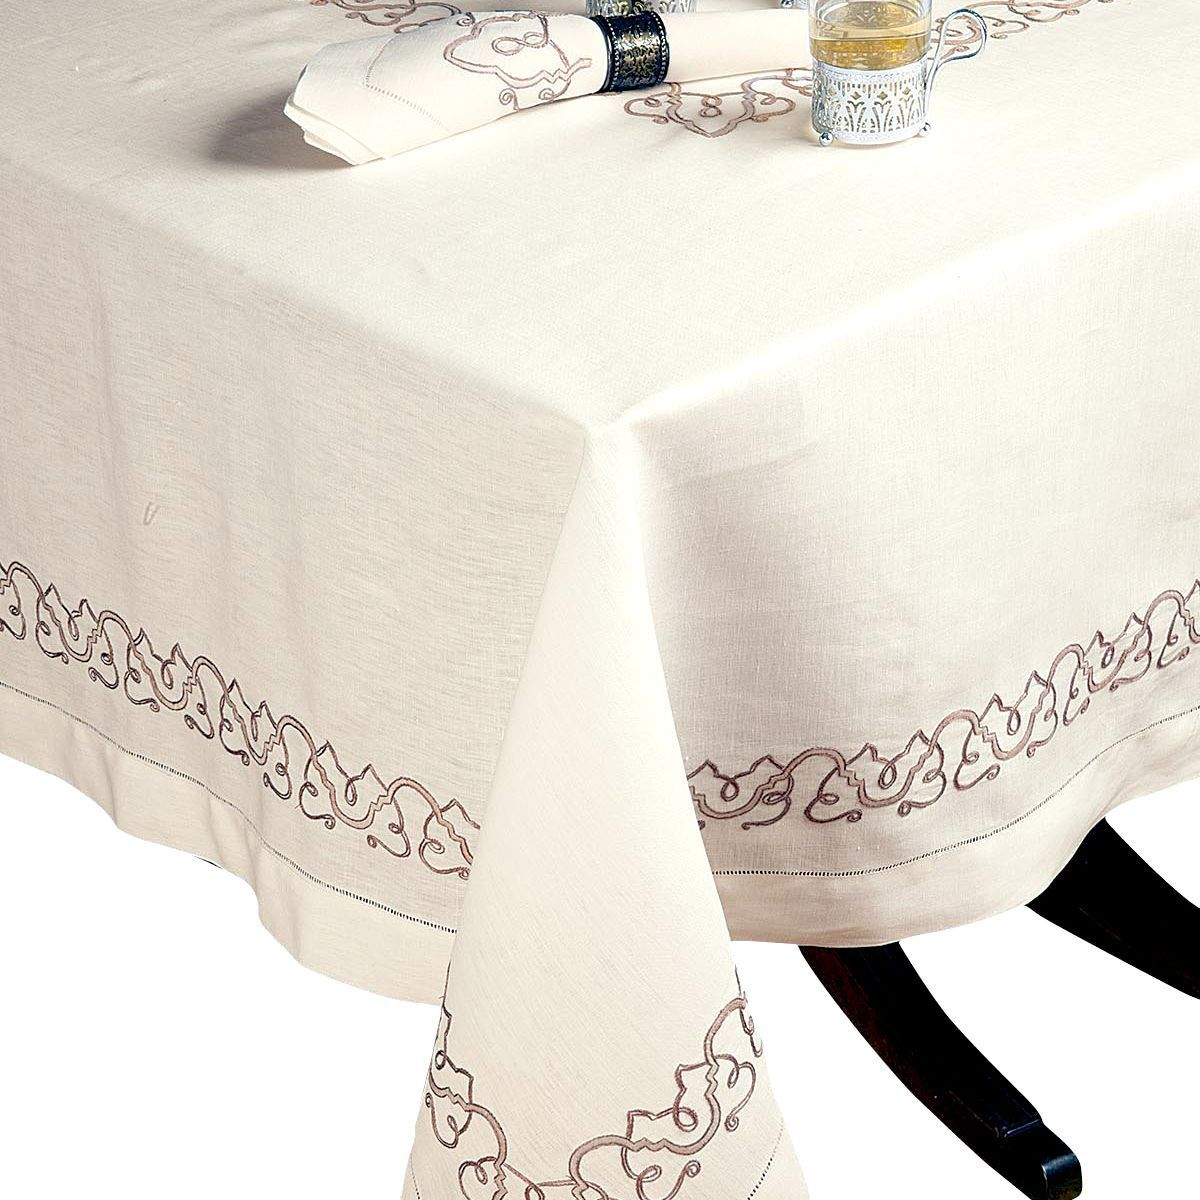 Tuscany Fine Table Linens Schweitzer Linen Table Linens